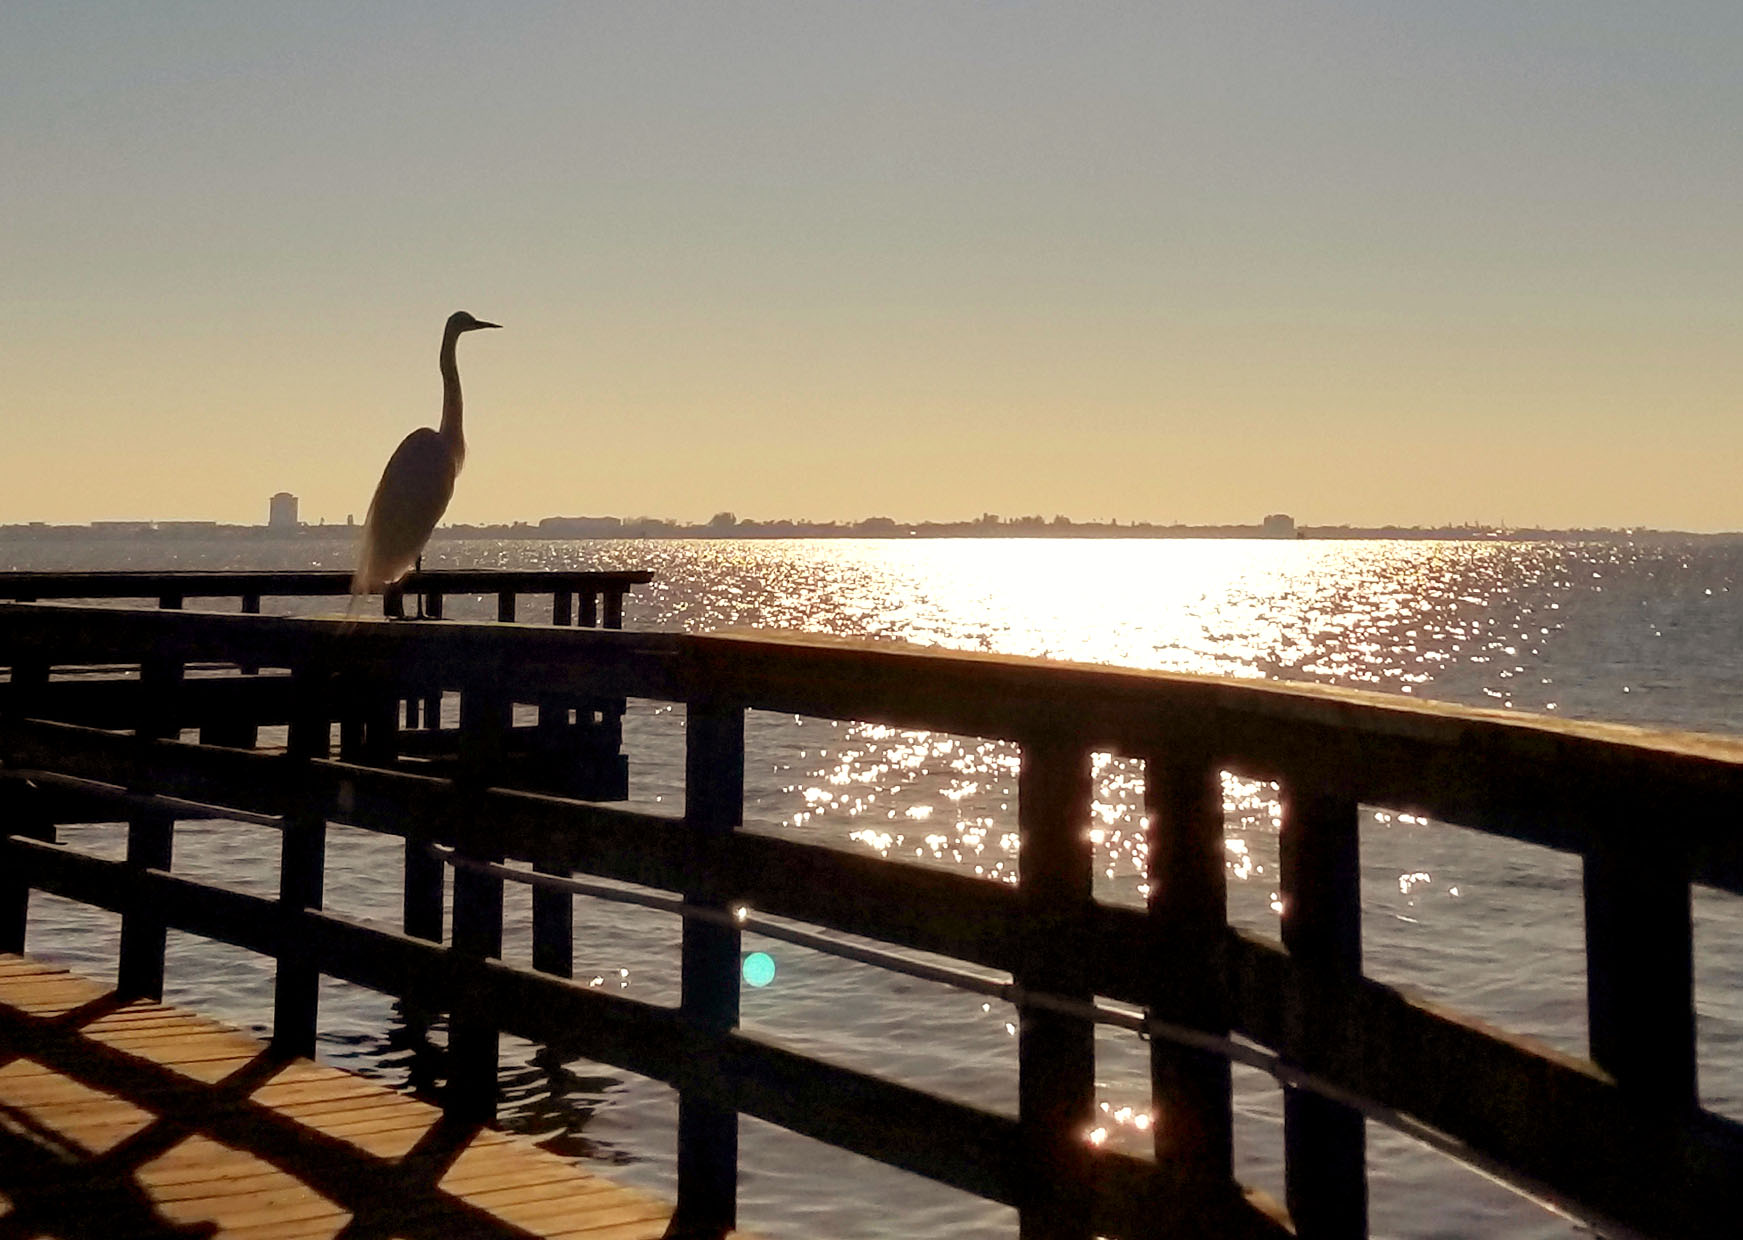 Heron at Castaway Point Park Pier